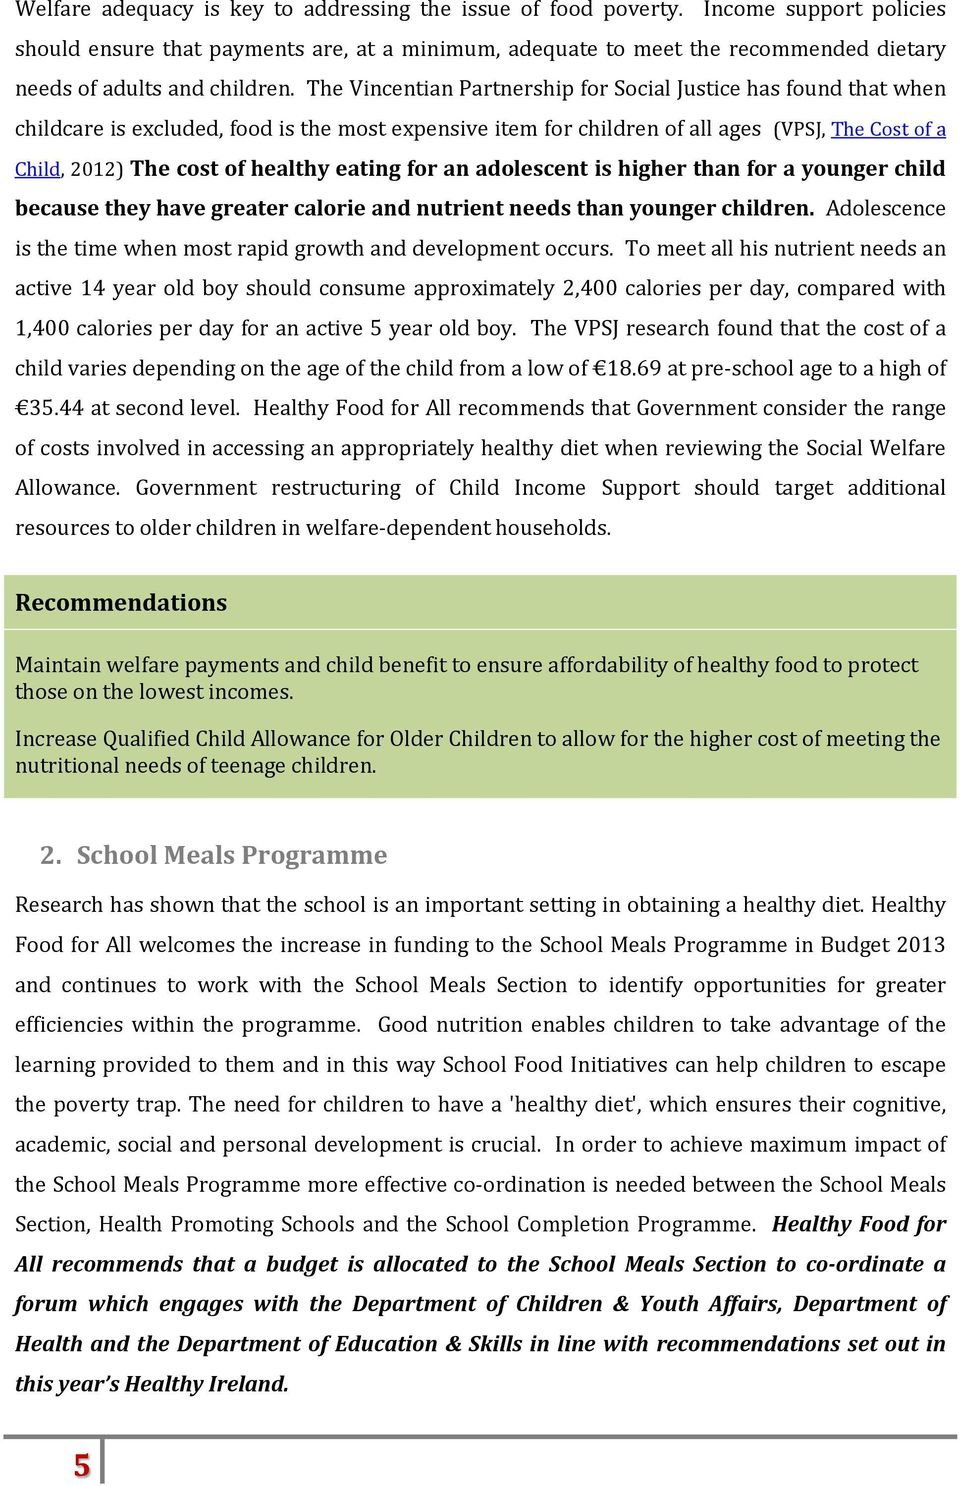 The Vincentian Partnership for Social Justice has found that when childcare is excluded, food is the most expensive item for children of all ages (VPSJ, The Cost of a Child, 2012) The cost of healthy